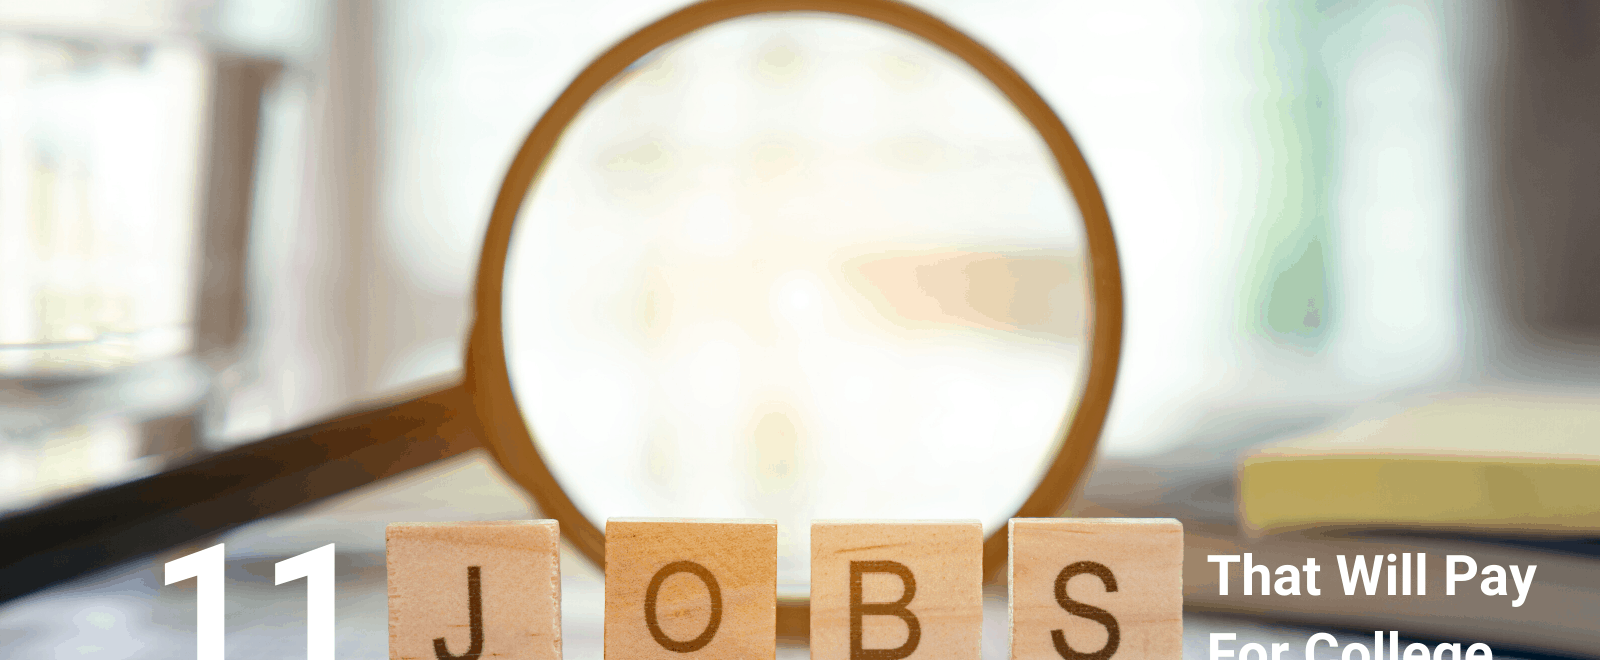 11 jobs that will pay for college